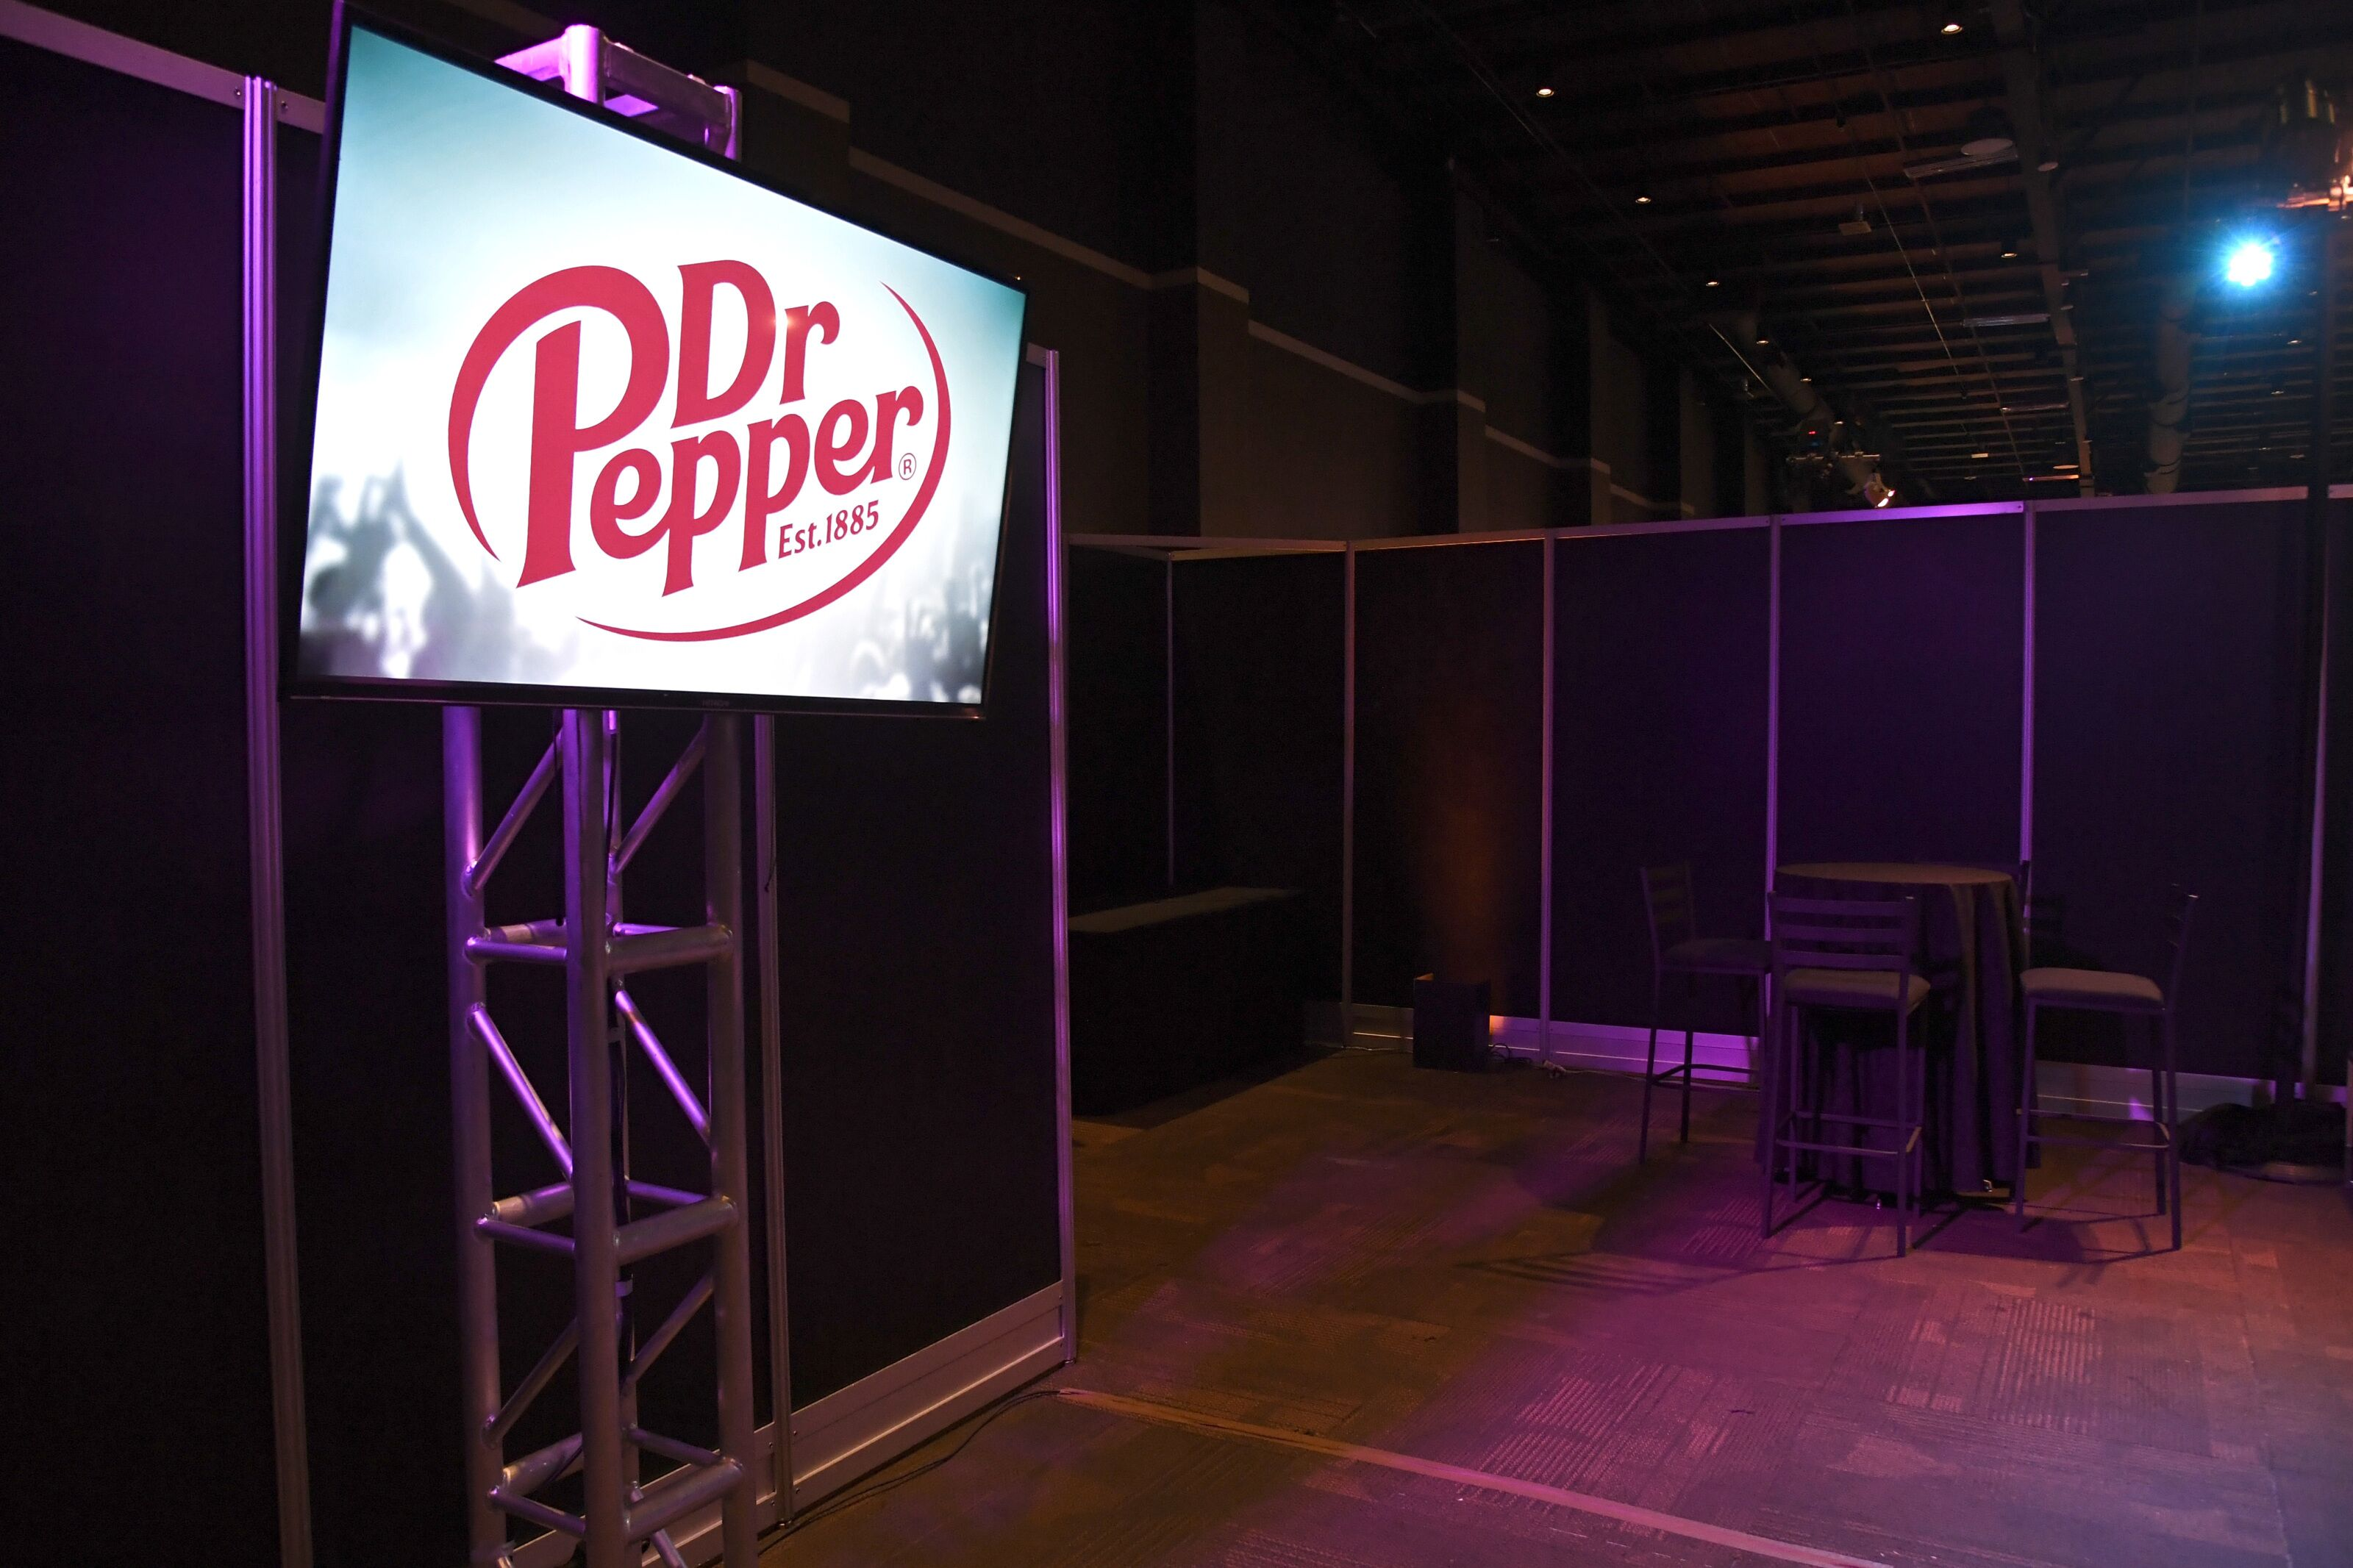 How can you get Dr. Pepper birthday cake soda for free?